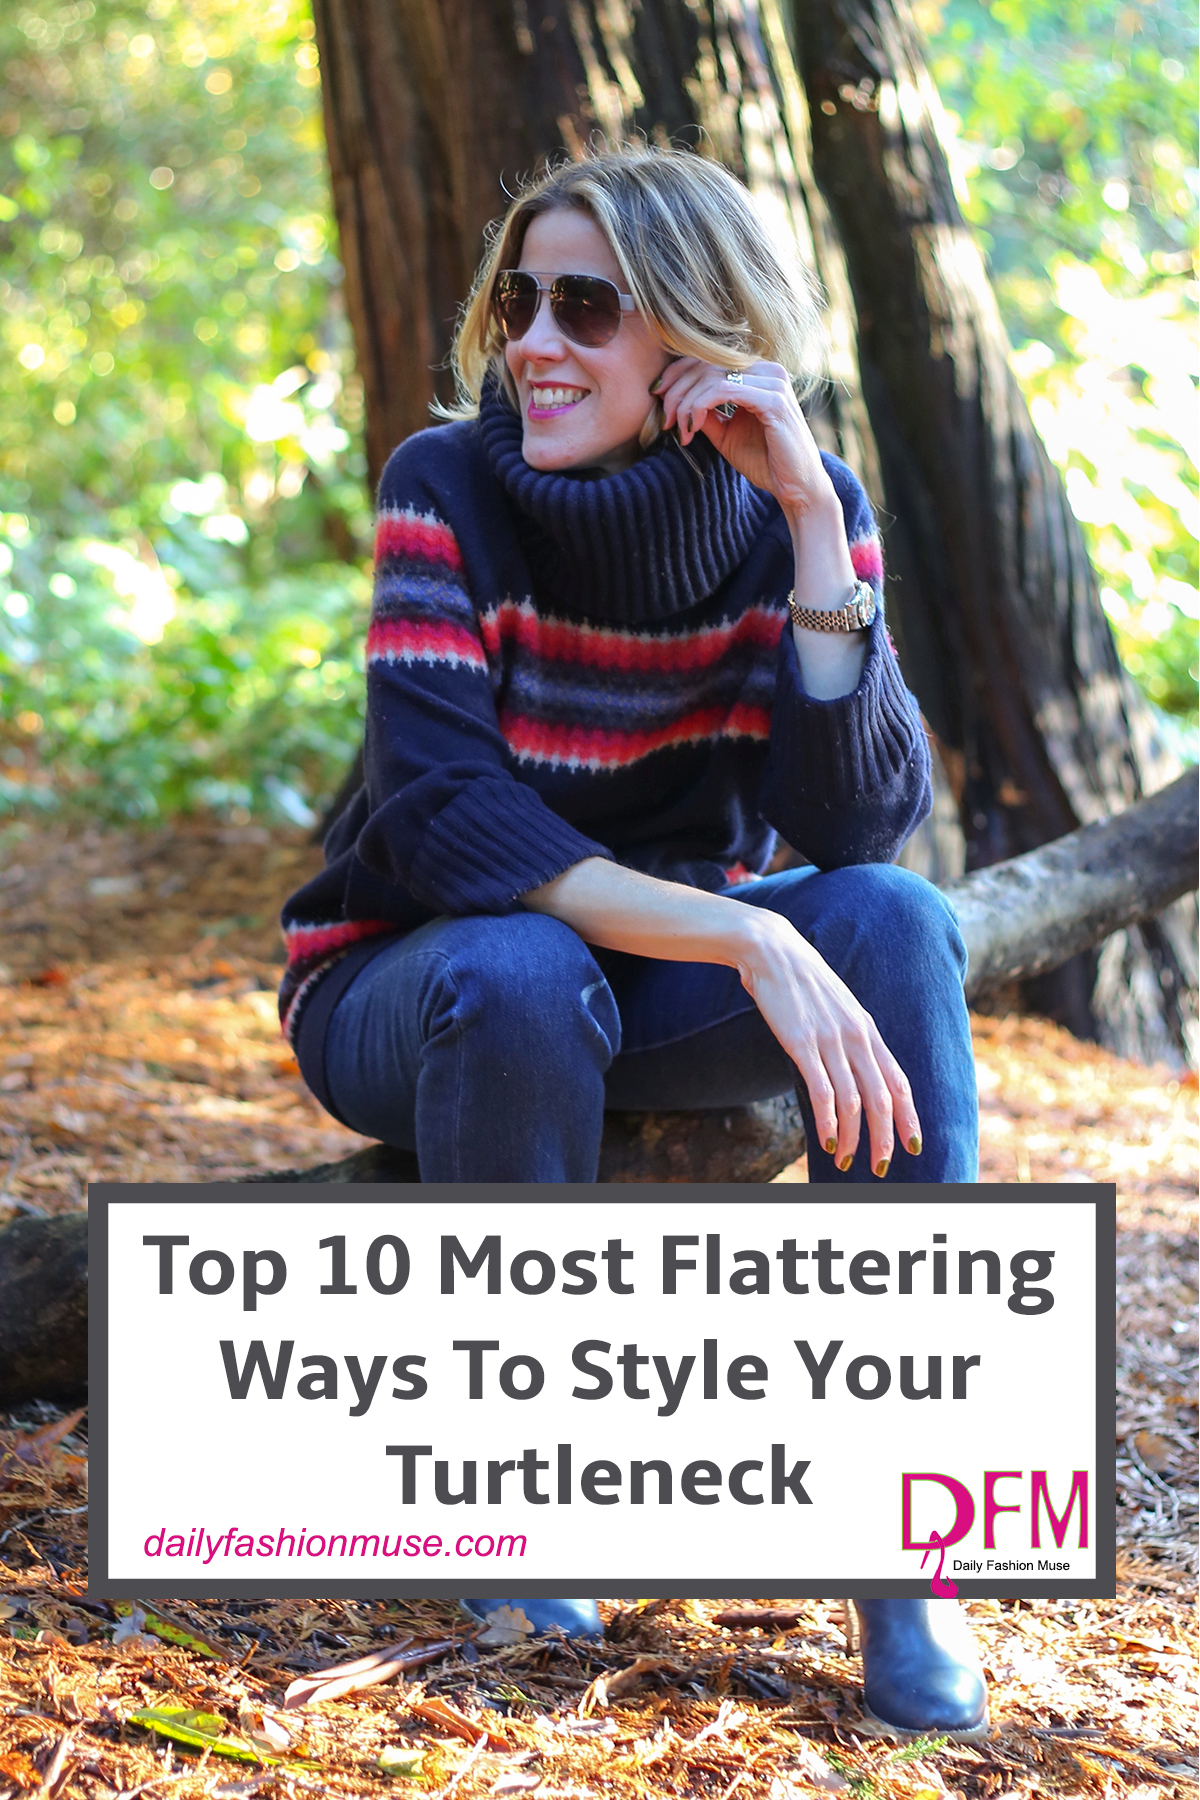 There are a few tips and styling tricks to making the turtleneck work. Click through for suggestions on the most flattering ways to wear a turtleneck.